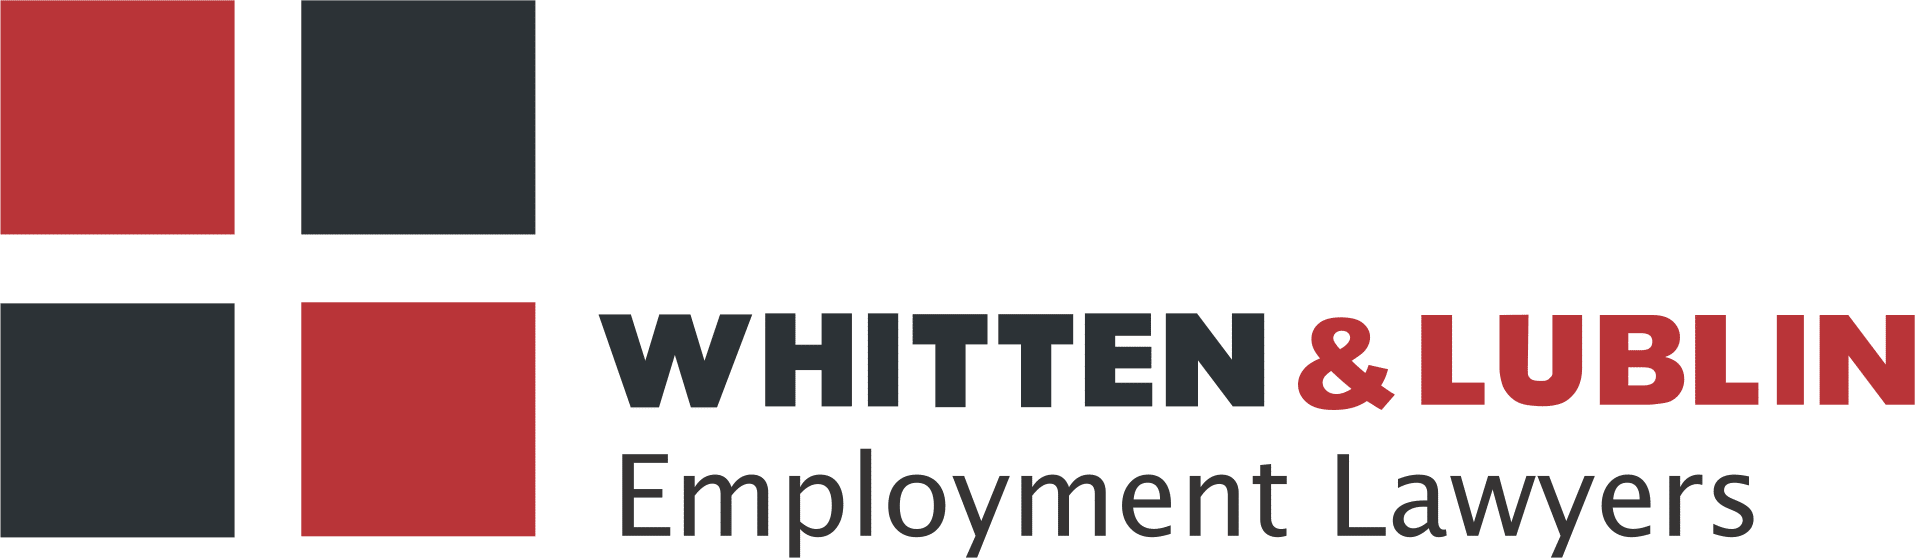 Whitten & Lublin Employment Lawyers Toronto & GTA